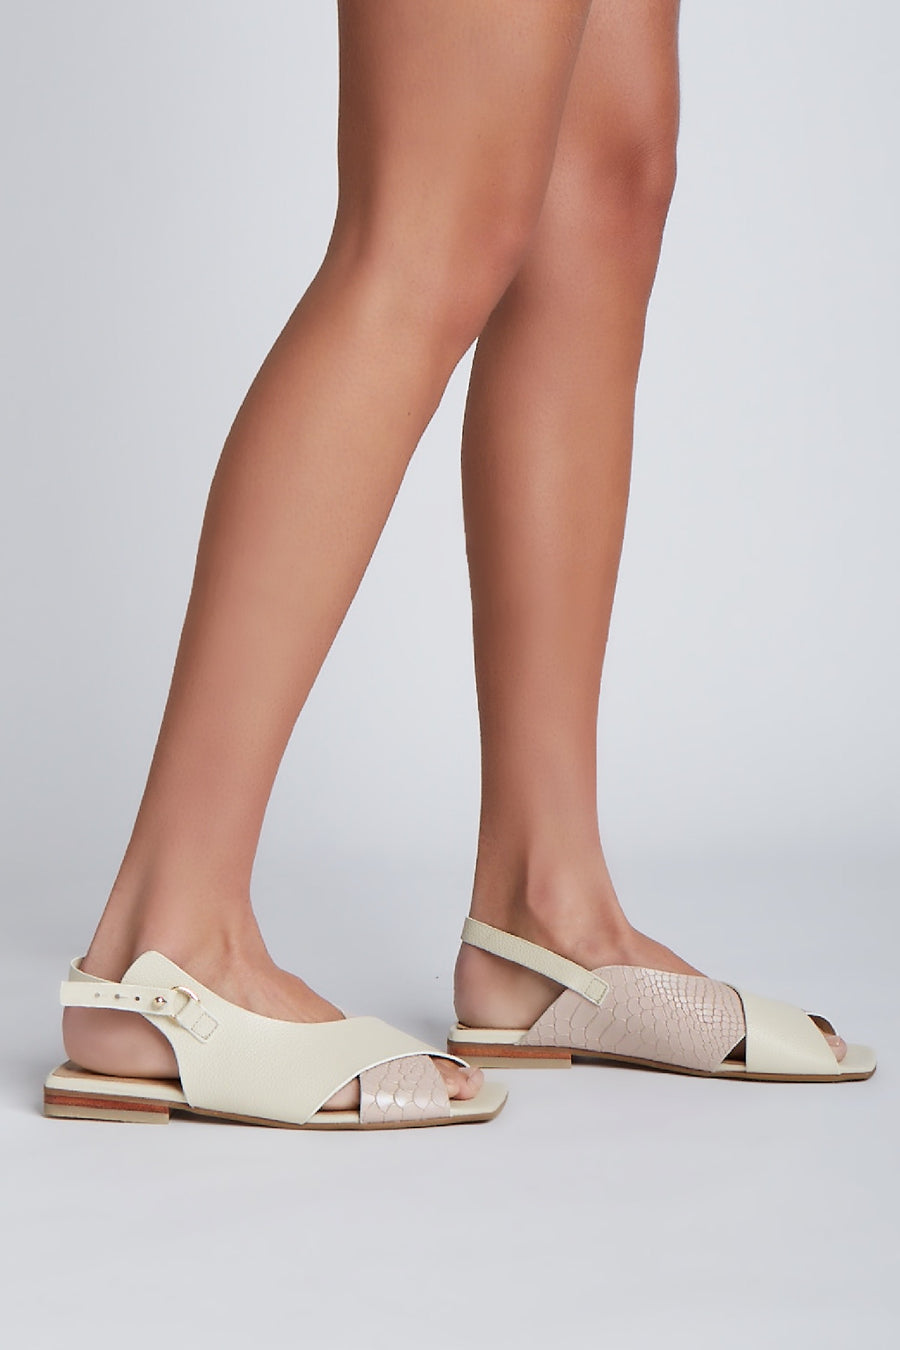 Root sandals in nude/ivory leather